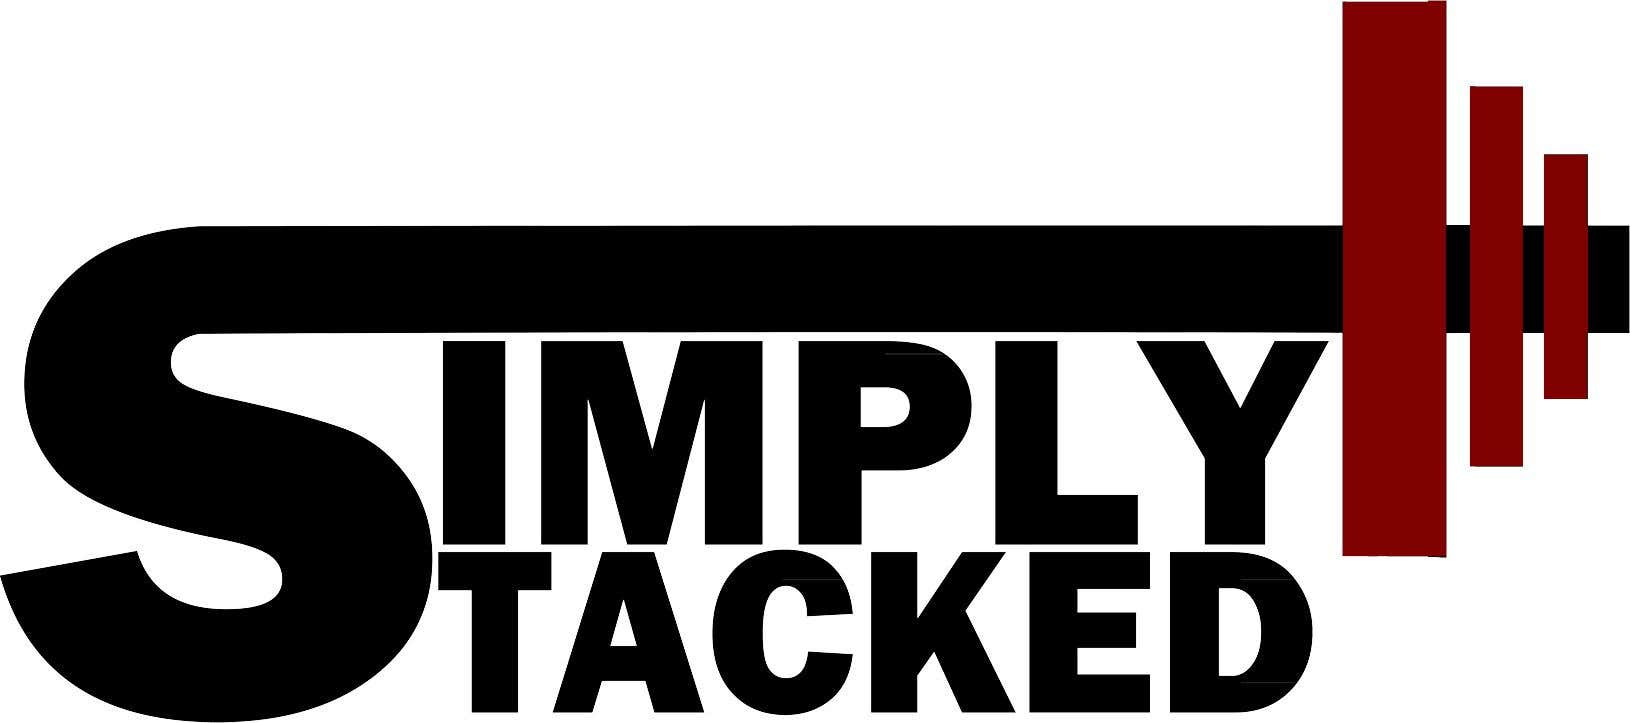 Profile image of Simplystacked